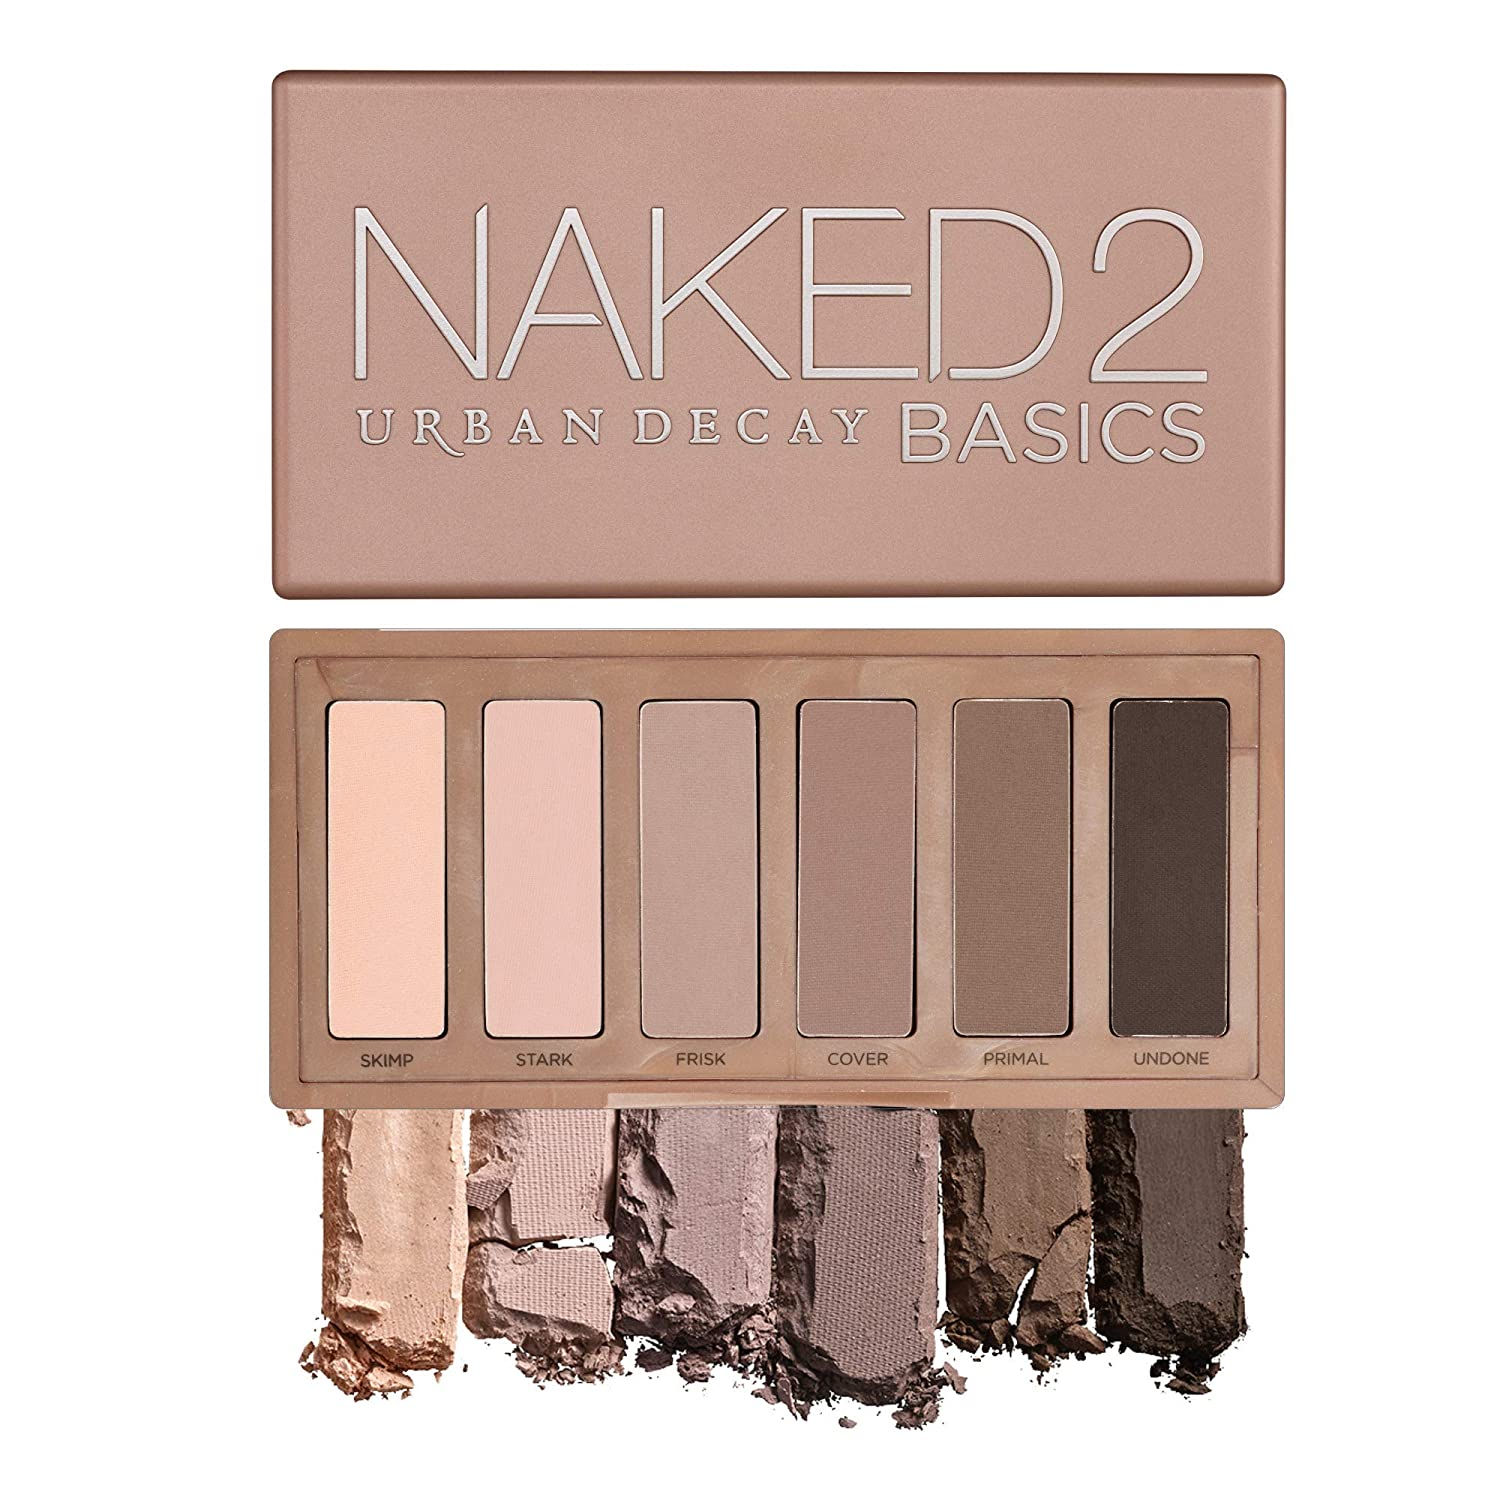 Urban Decay Naked2 Basics Eyeshadow Palette, 6 Taupe & Brown Matte Neutral Shades – Ultra-Blendable, Rich Colors with Velvety Texture – Makeup Set Includes Mirror & Full-Size Pans – Great for Travel